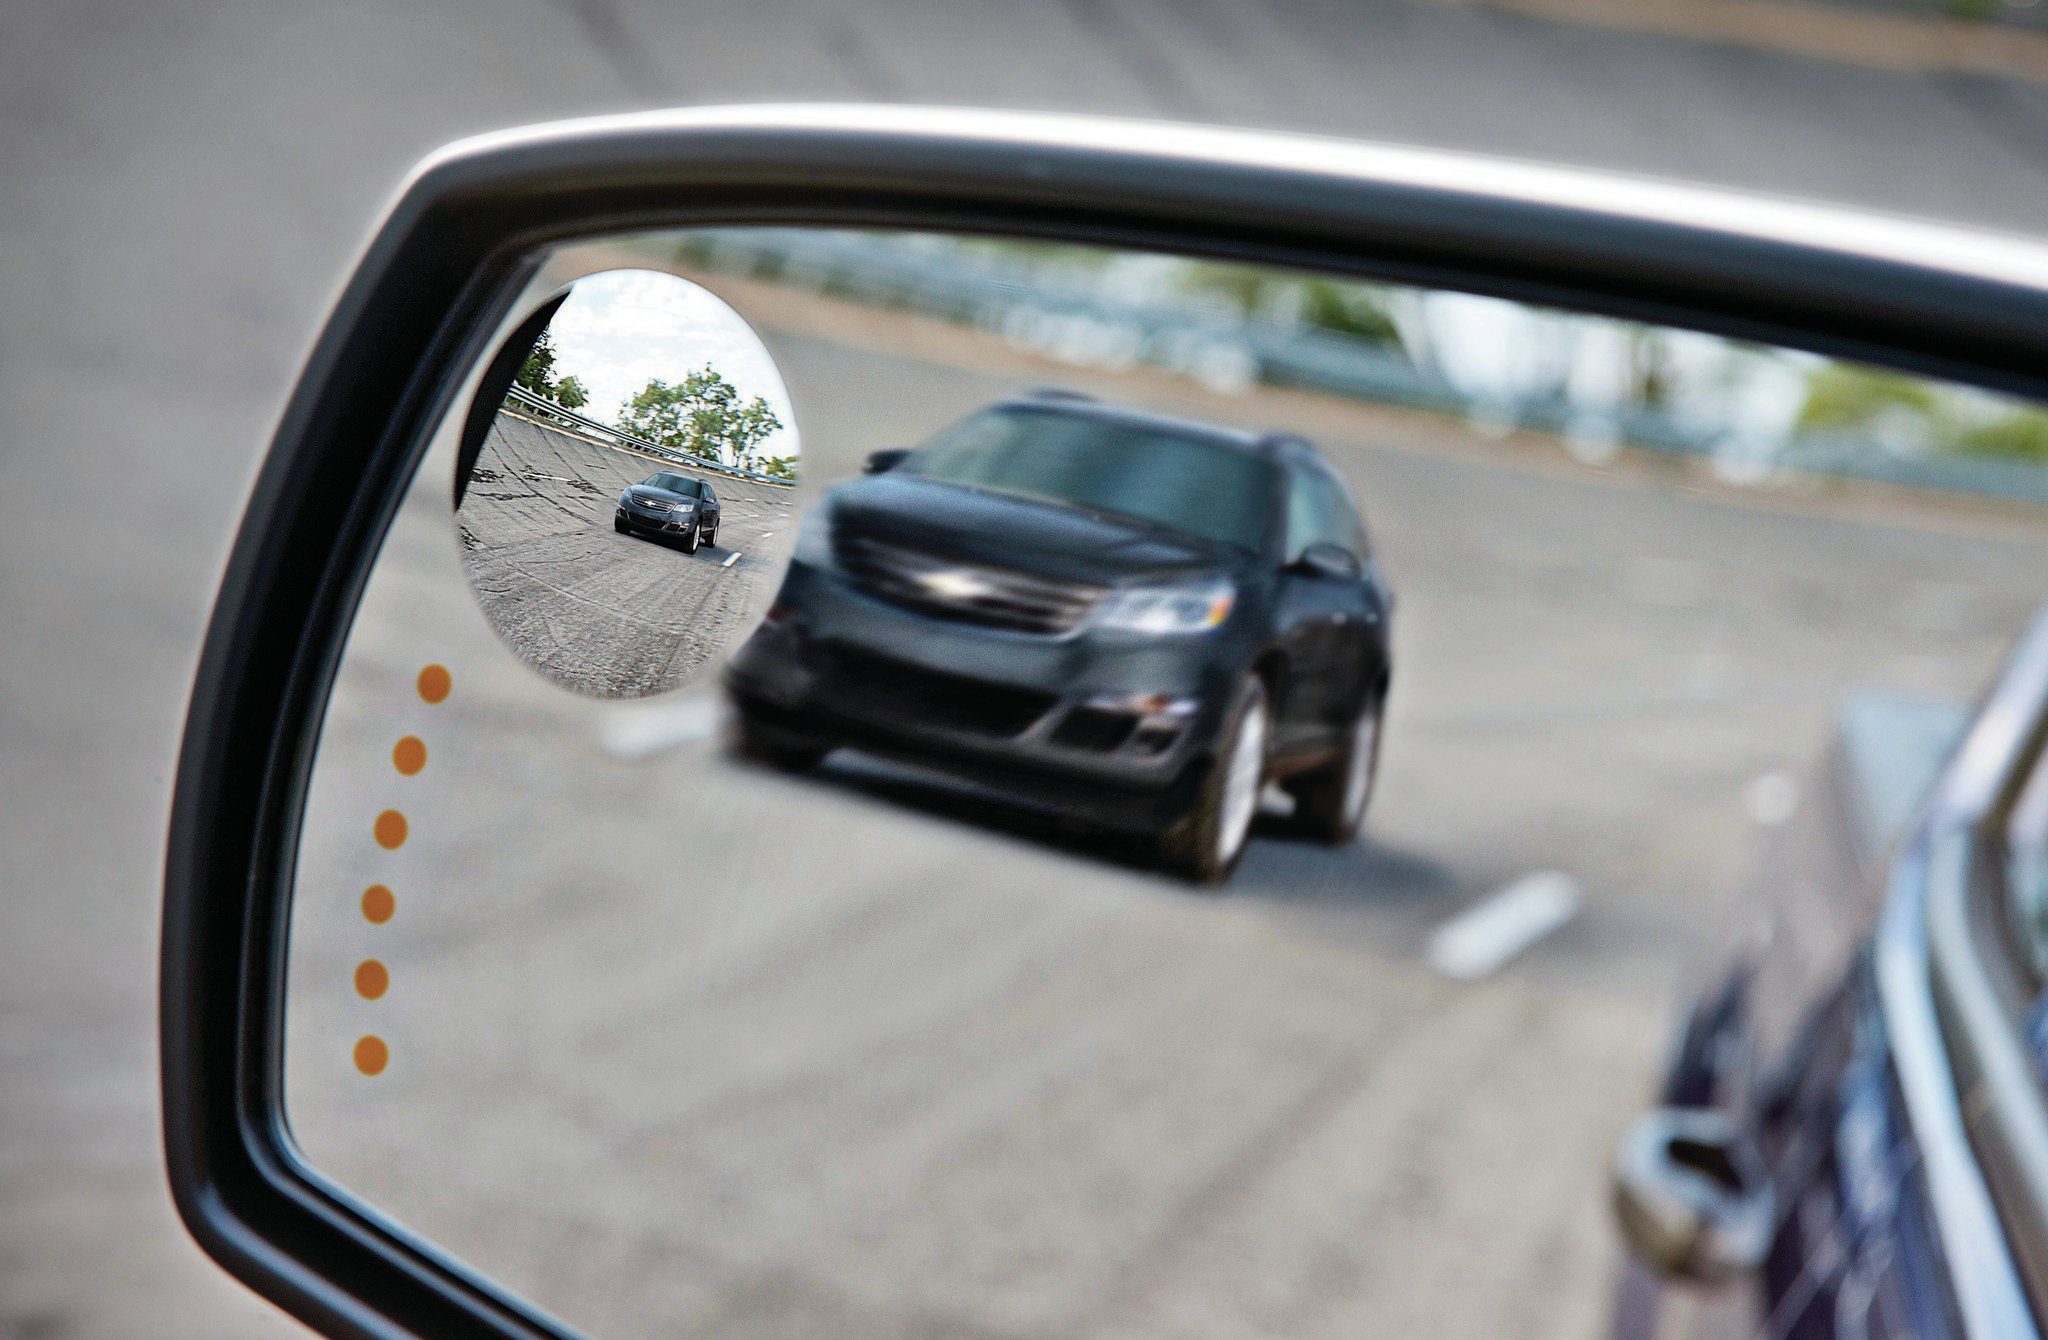 The side mirrors alert you when another car is in your blind spot. And if you get too close to either side of your lane, the seat vibrates to let you know. Incidentally, if that idea bothers you, you can always shut the feature off at the flip of a switch.